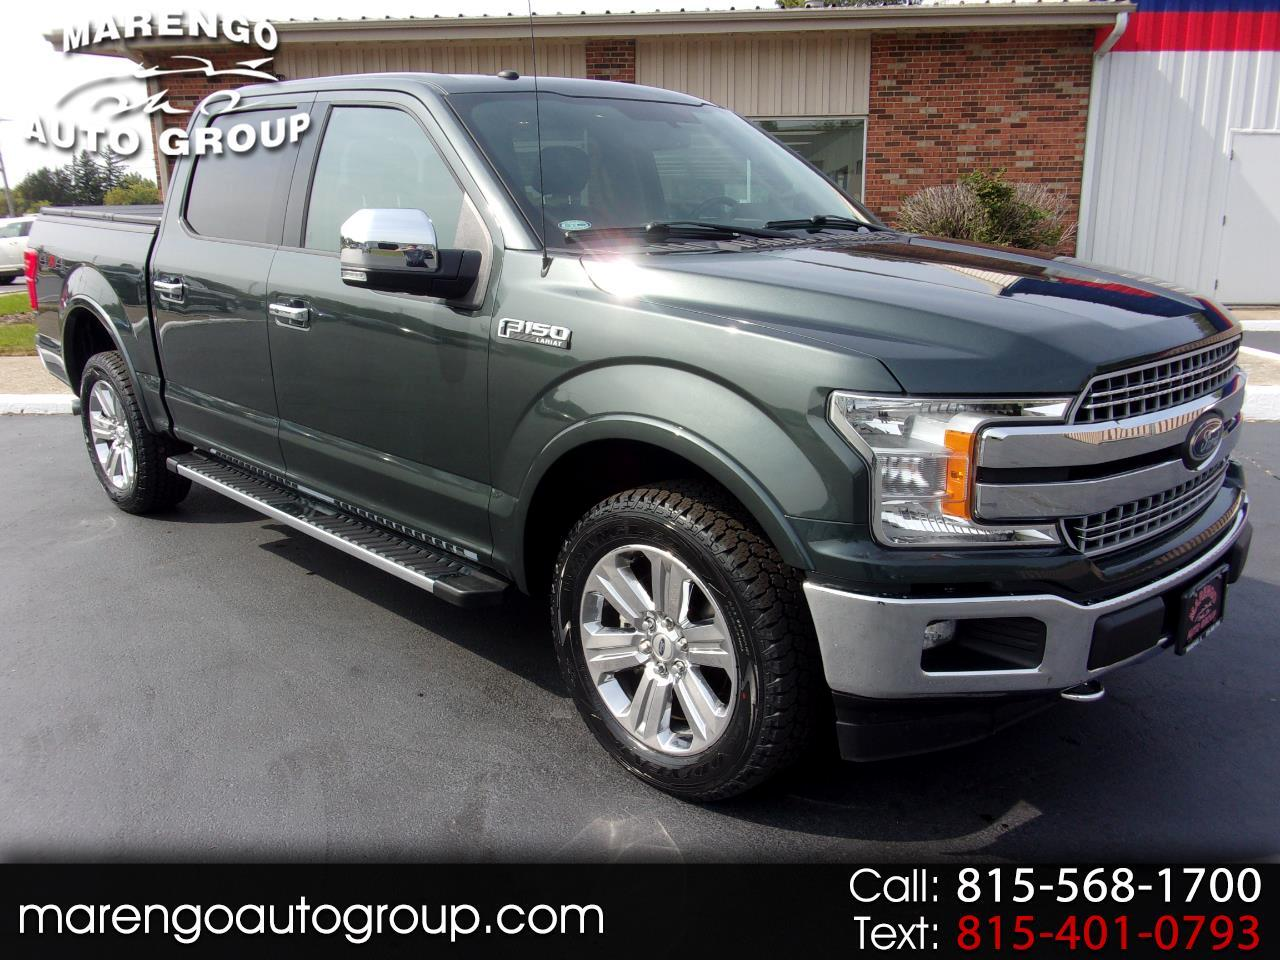 used 2018 Ford F-150 car, priced at $39,996